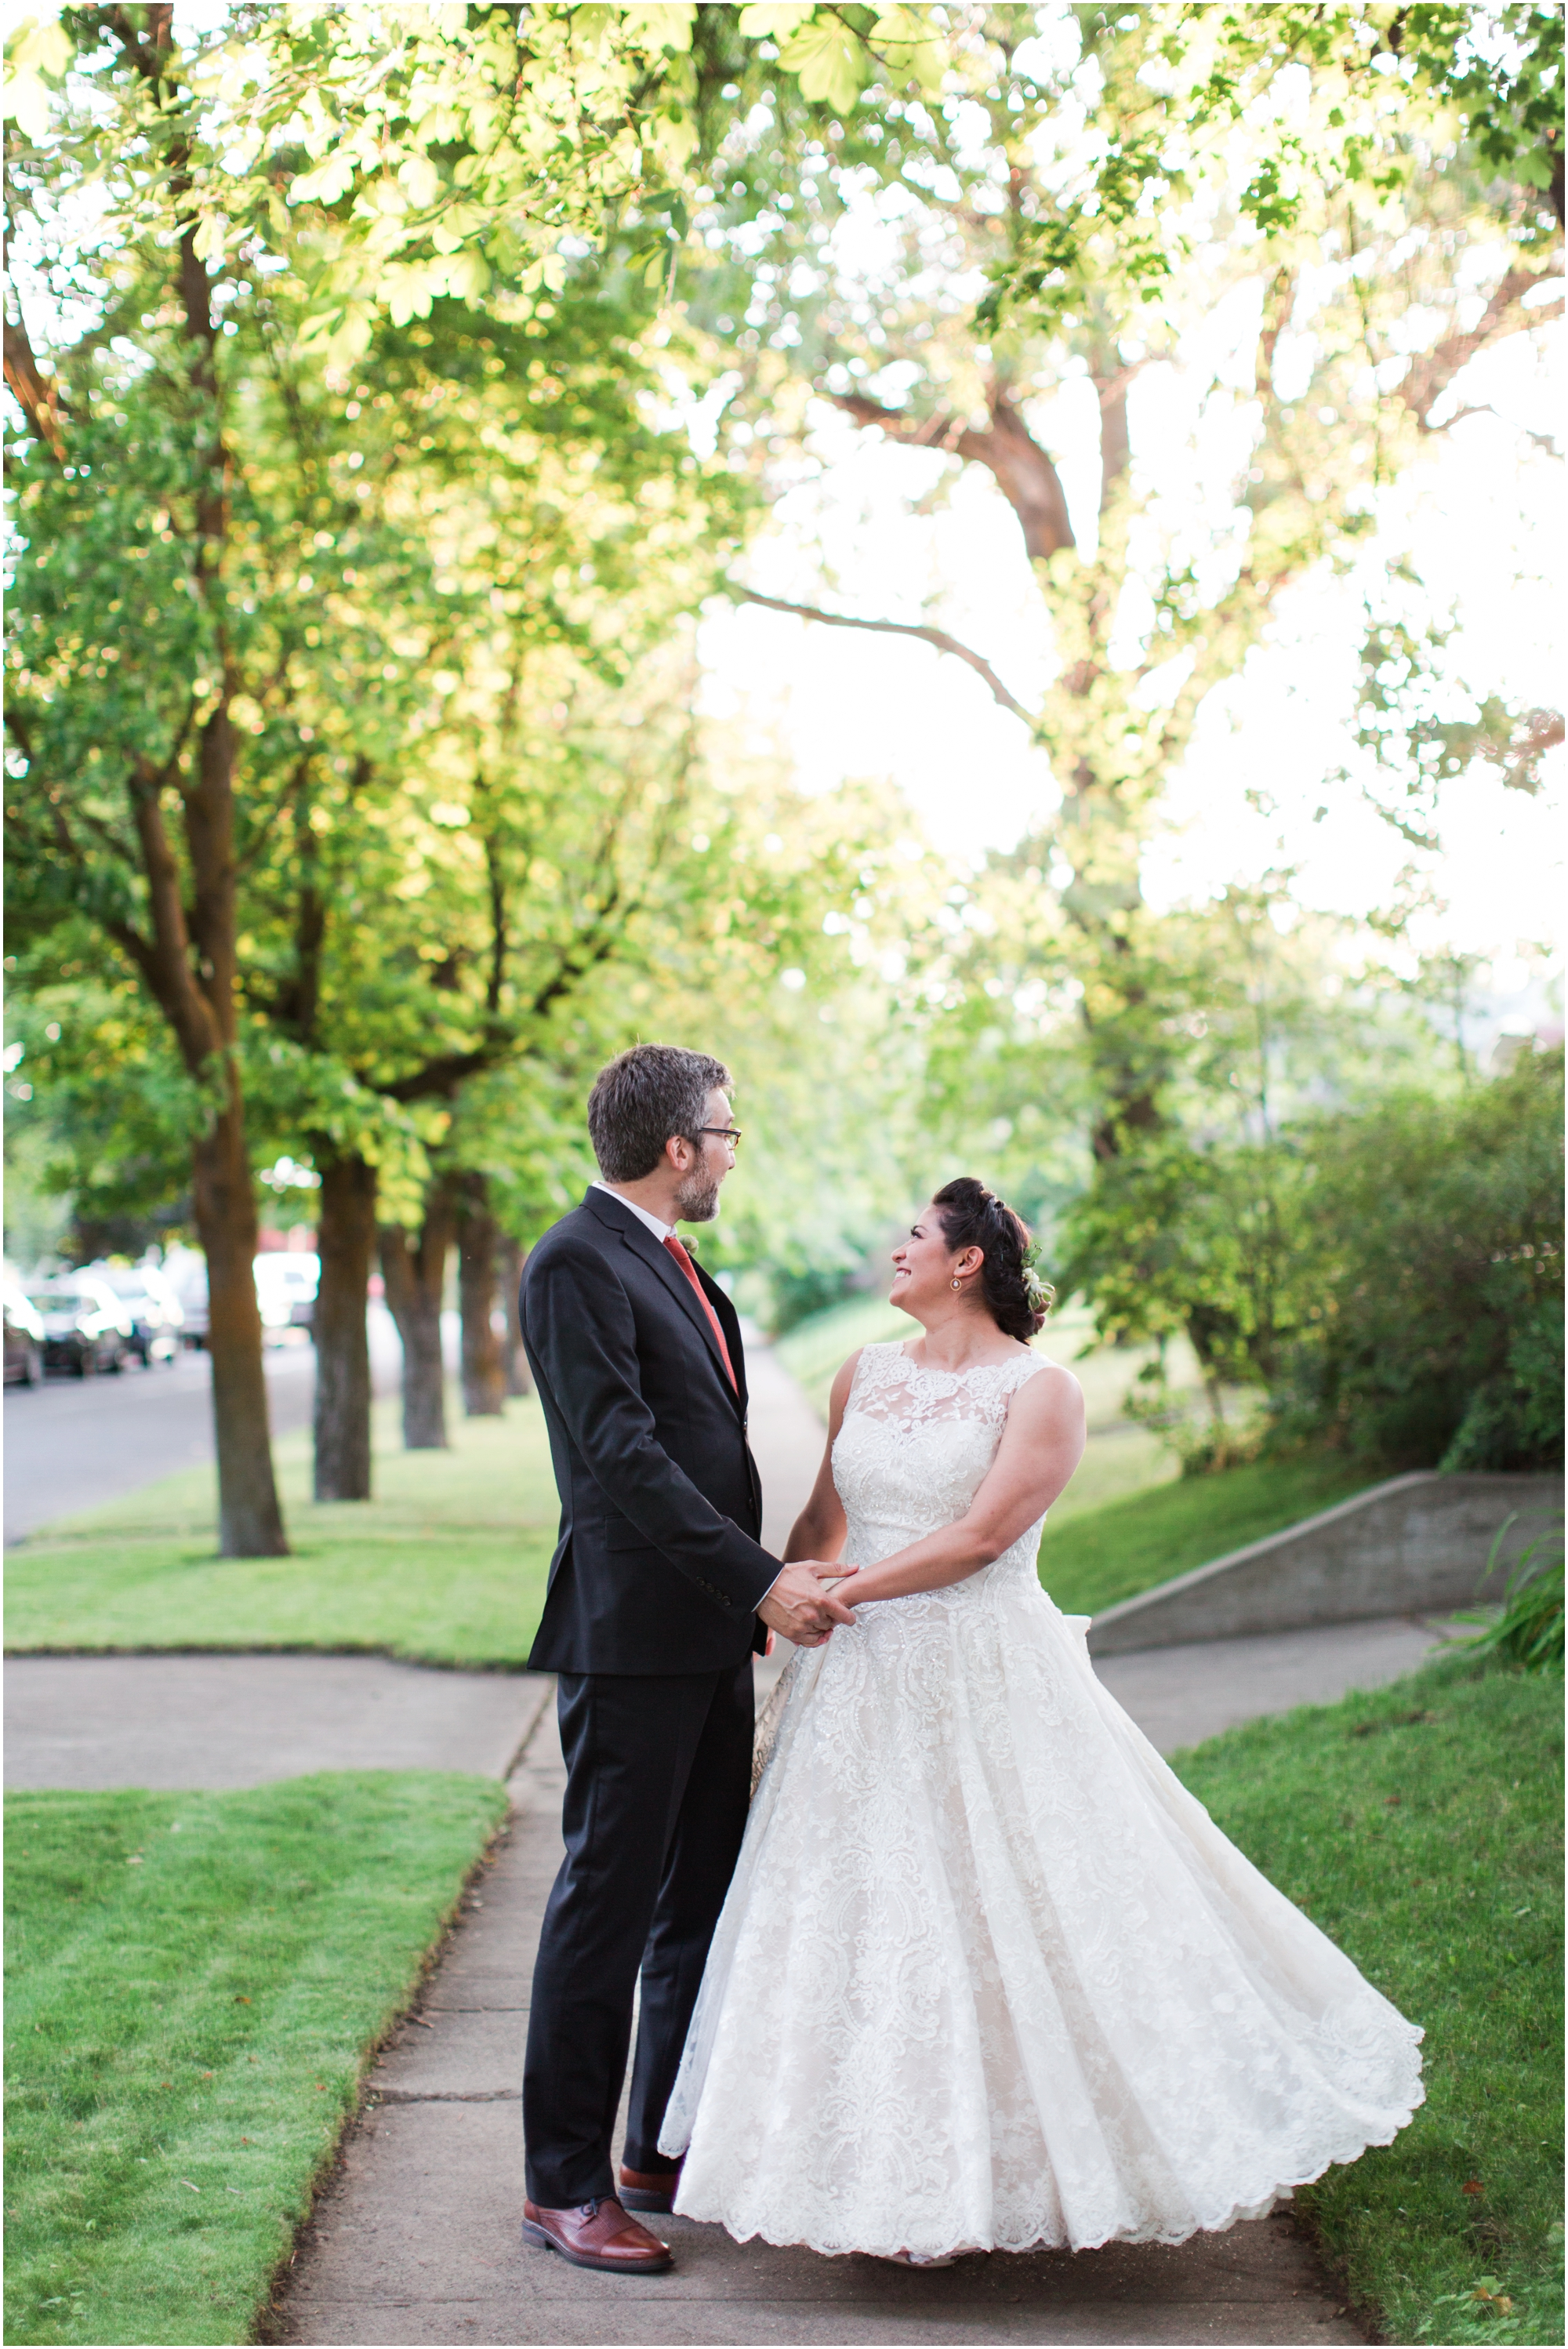 Garden wedding in Ellensburg, WA. Photos by Briana Calderon Photography based in the greater Seattle-Tacoma Area._1355.jpg